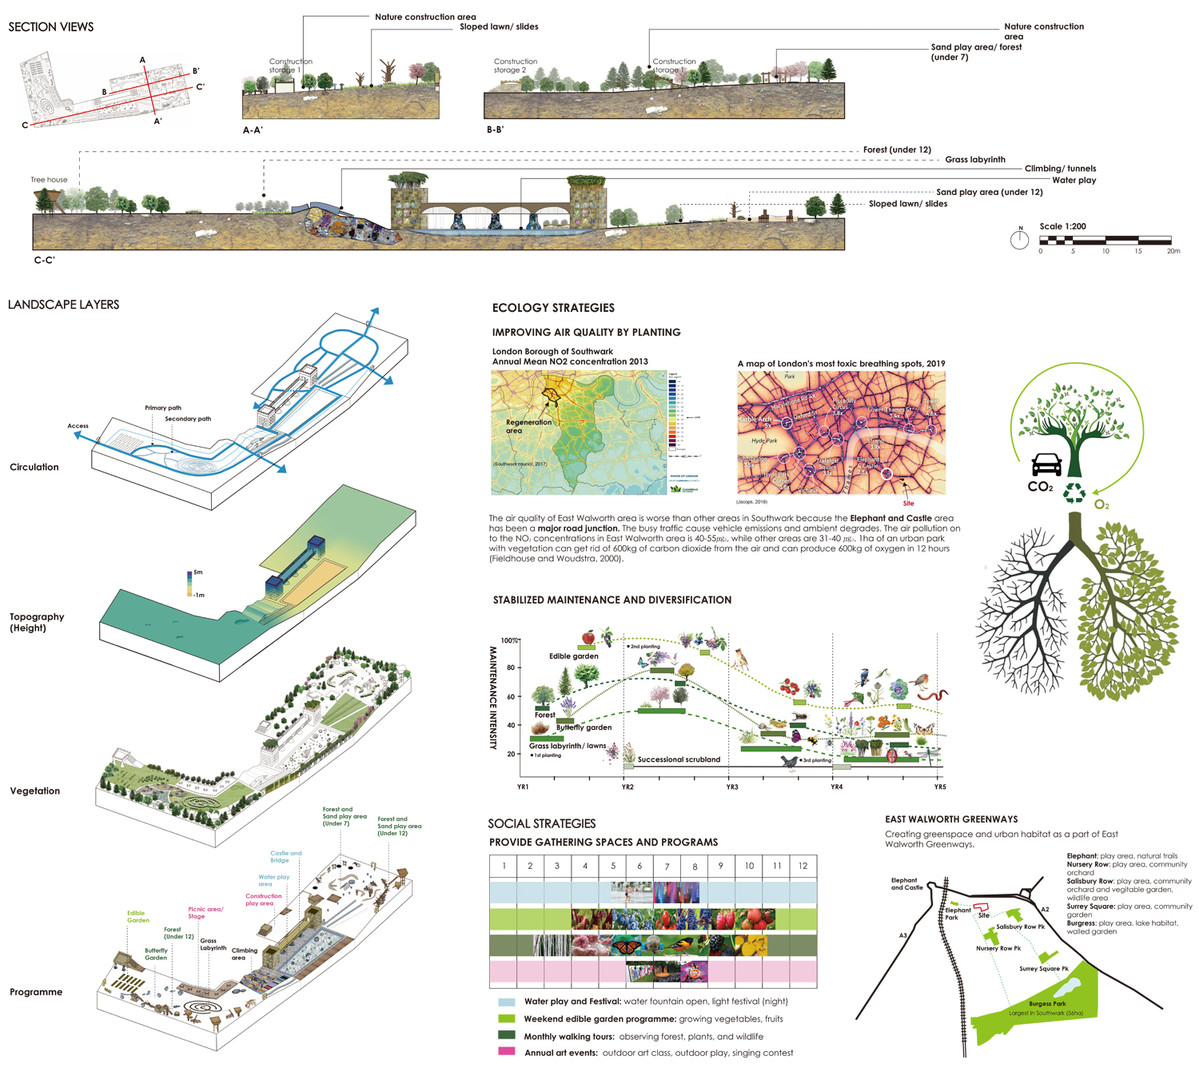 Section views, landscape layers, and ecological and social strategies